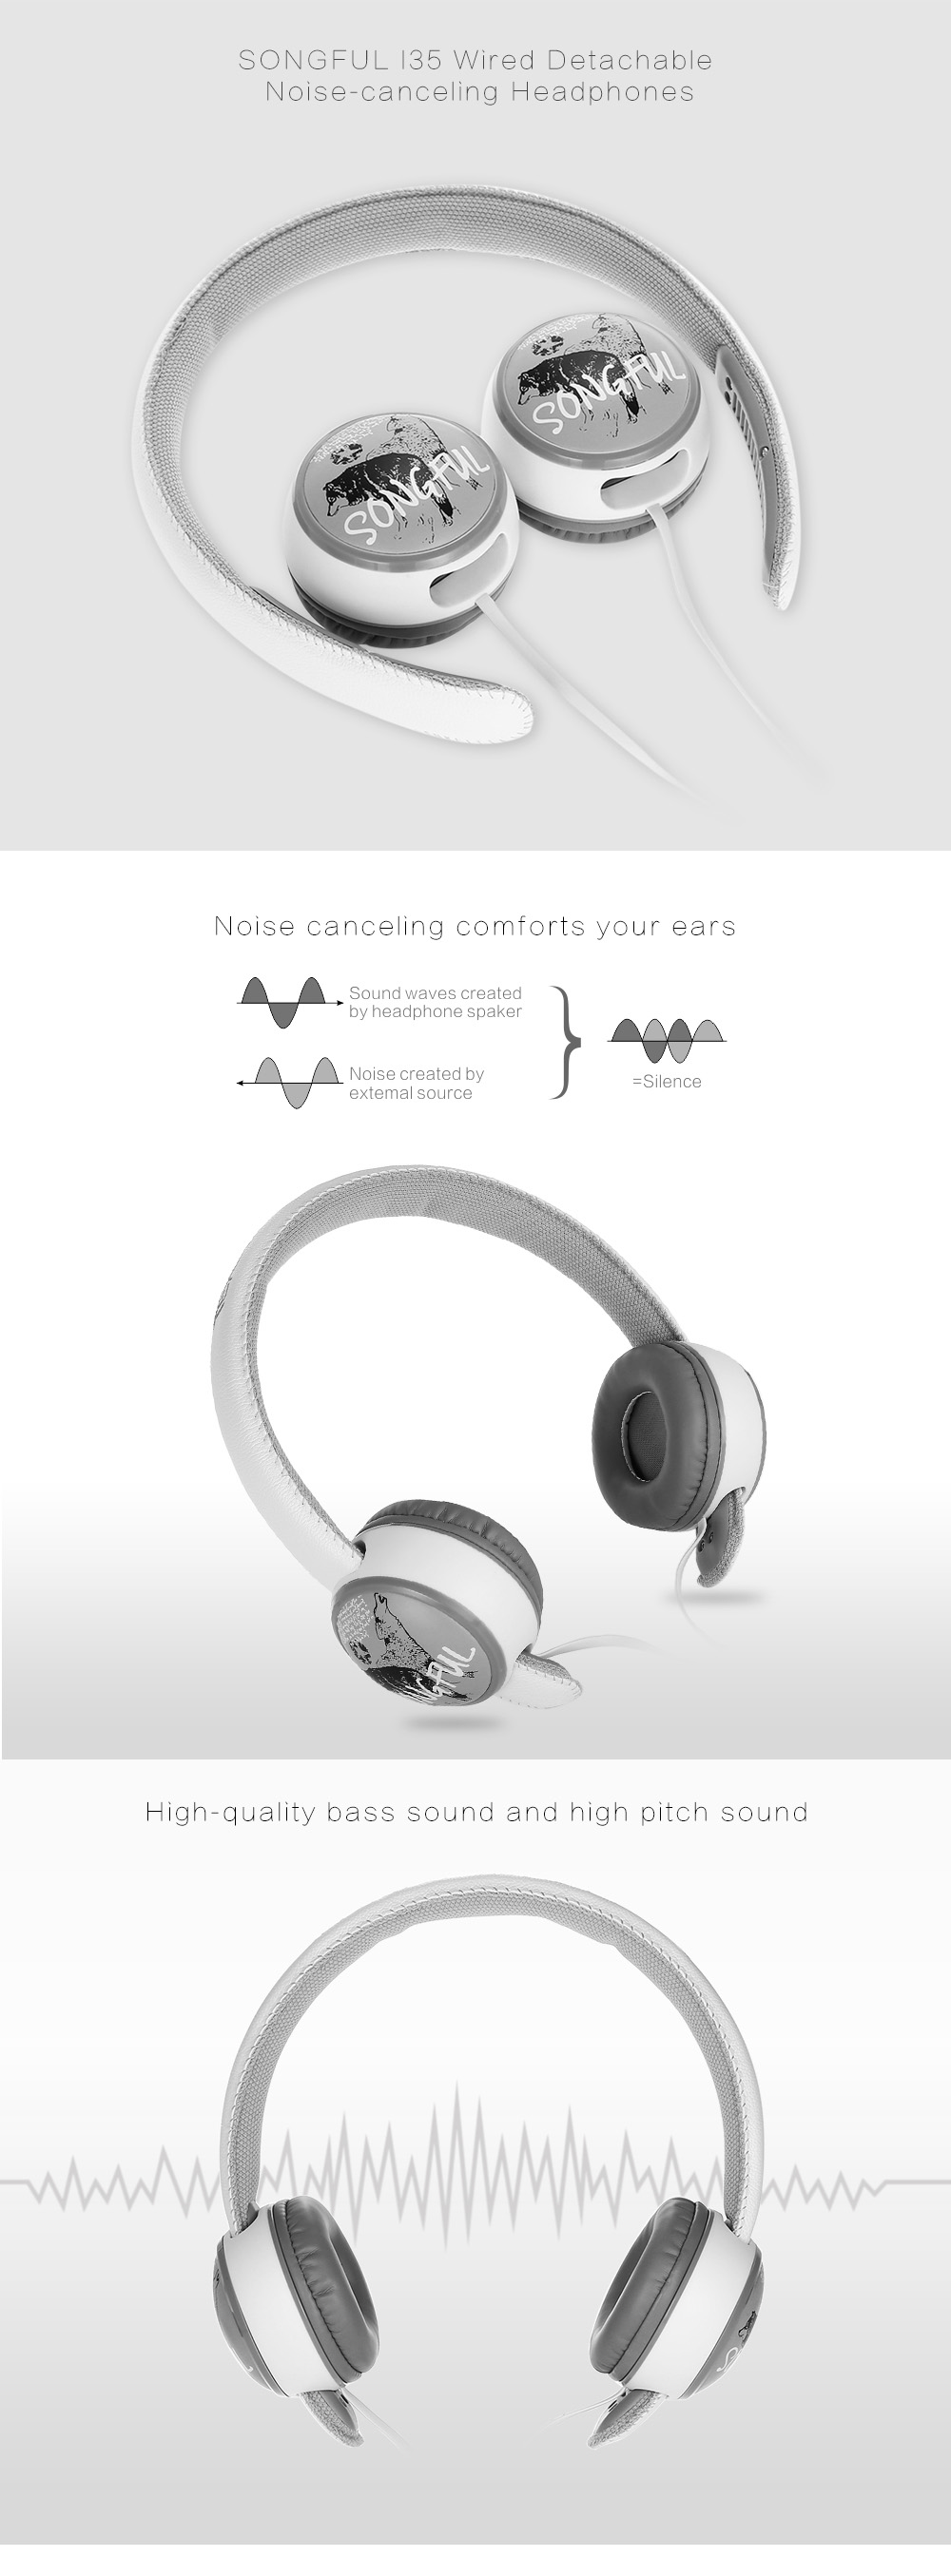 SONGFUL I35 Wired Detachable Noise-canceling Headphones Built-in Mic with Song Switch Function